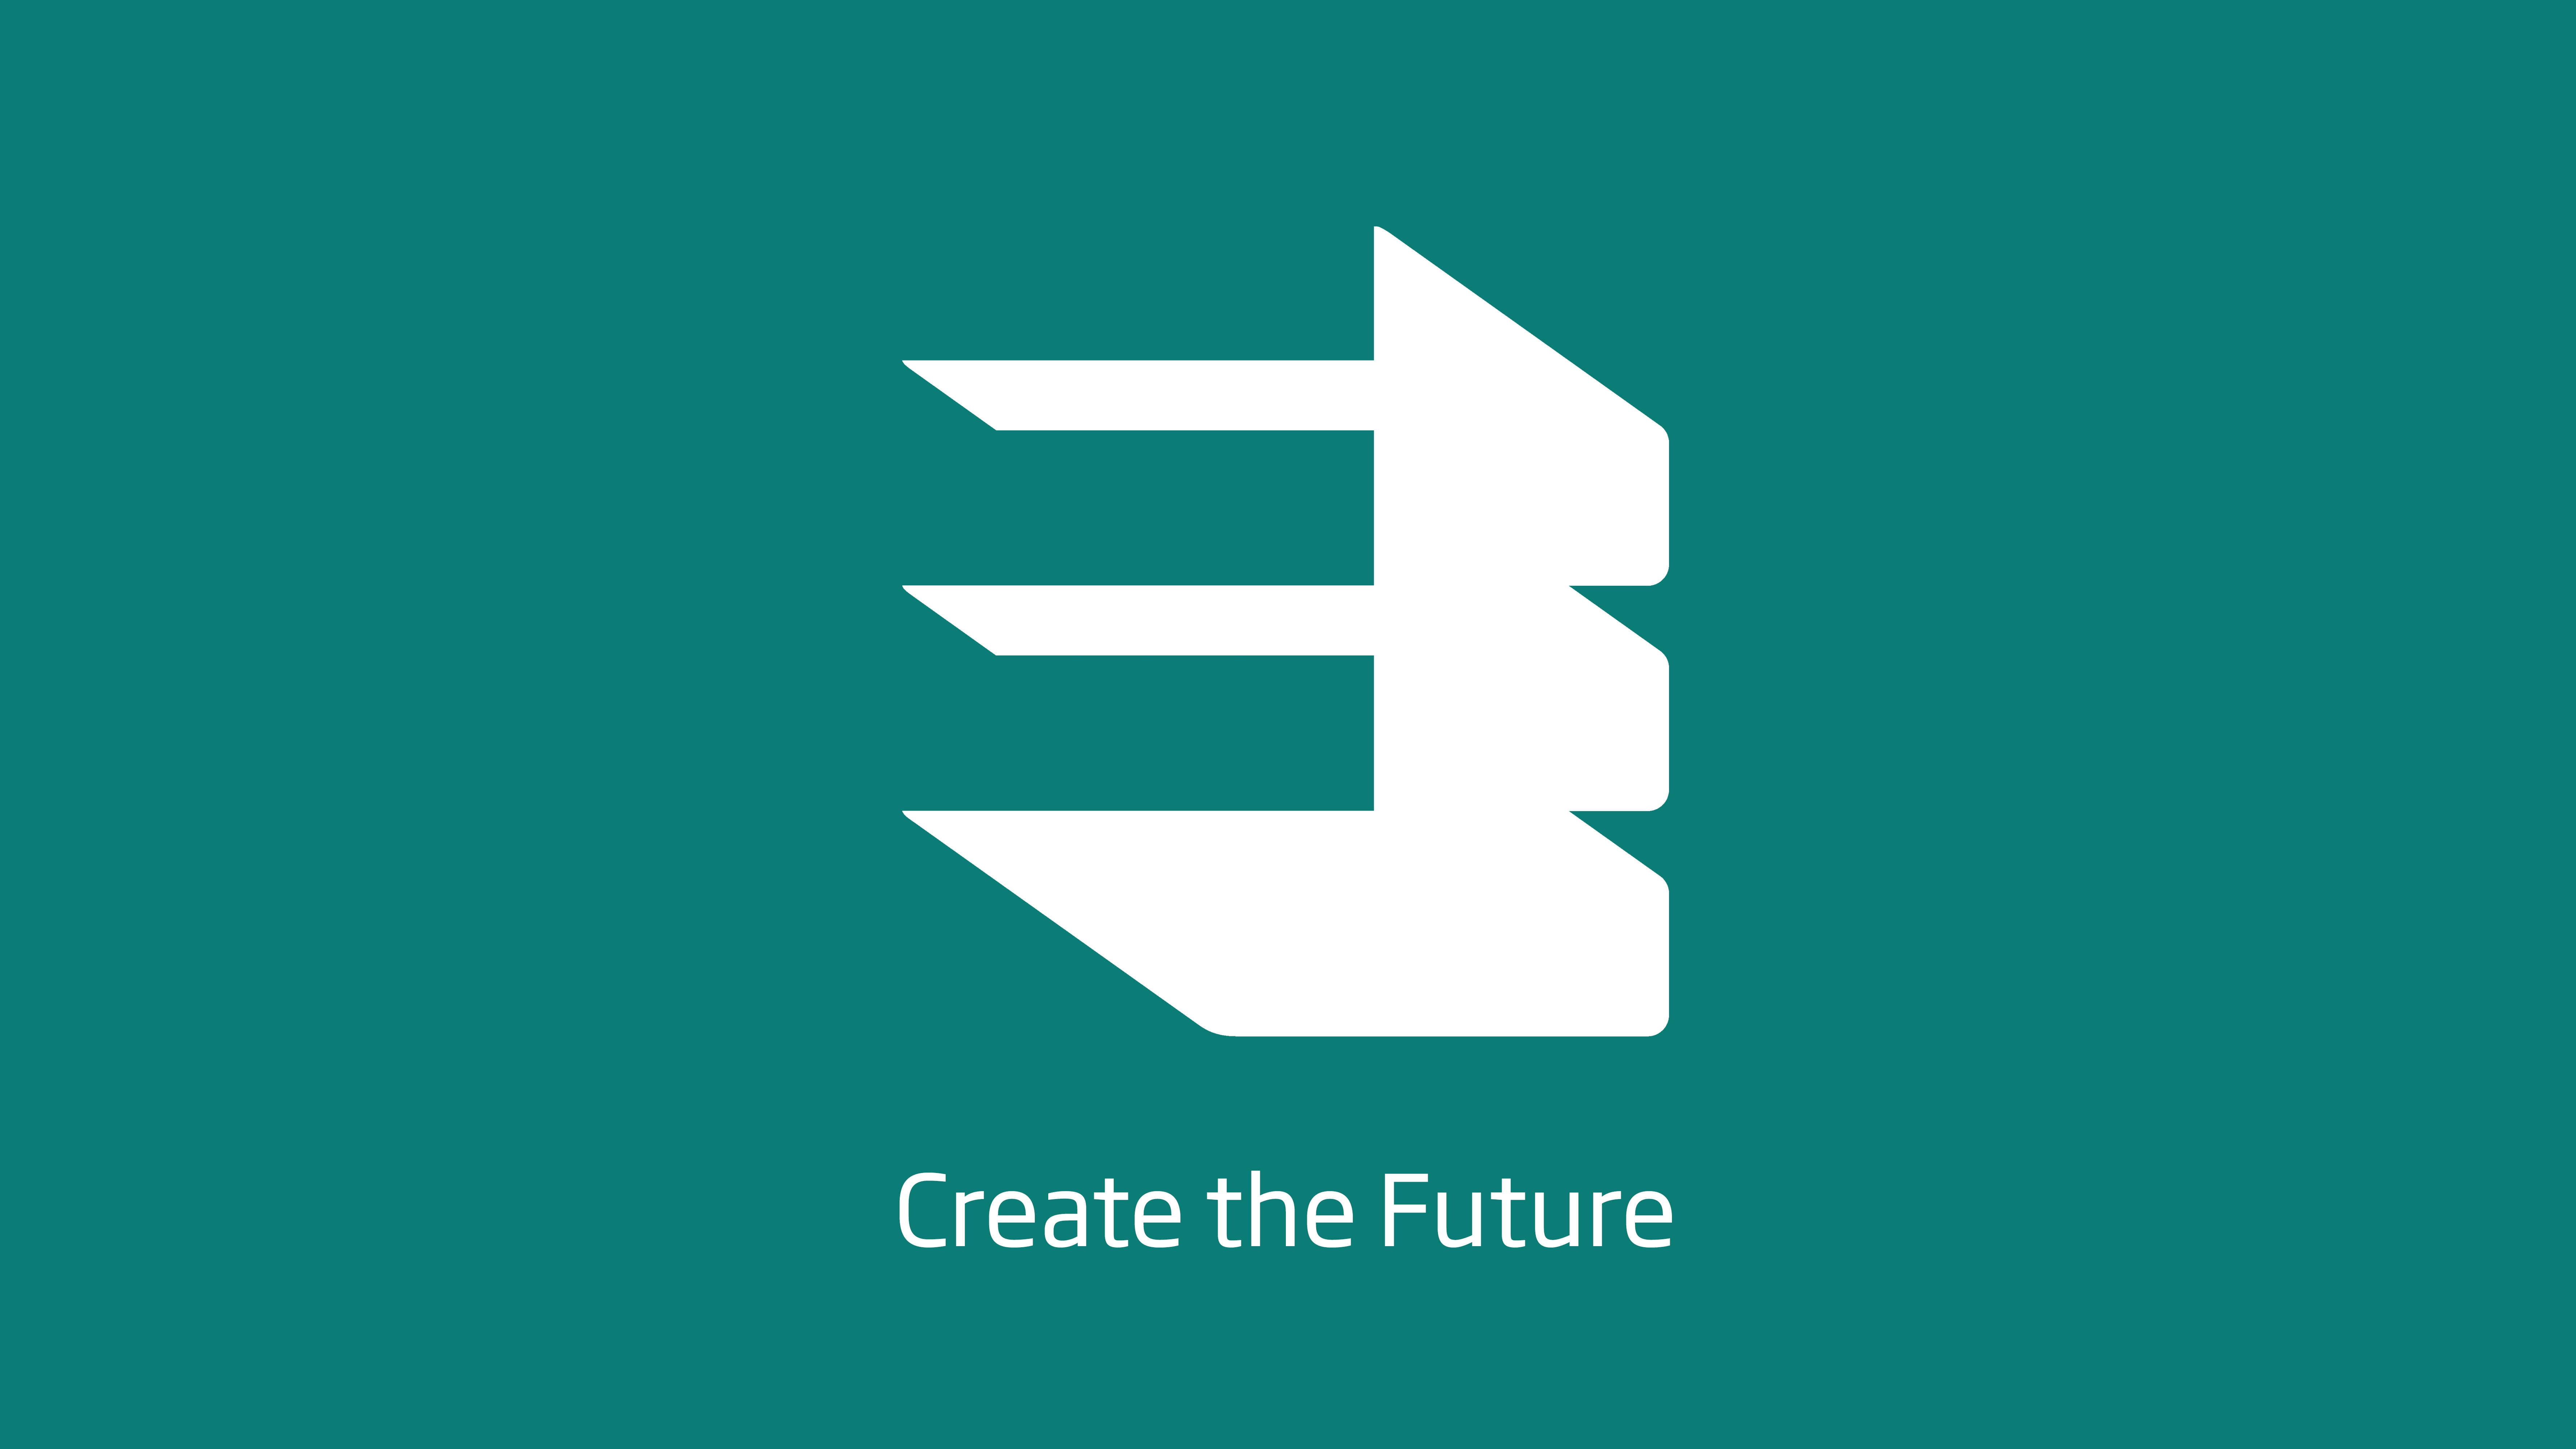 Graphic of the QEPrize logo with the words 'create the future' written underneath. The text and logo are white on a green background.